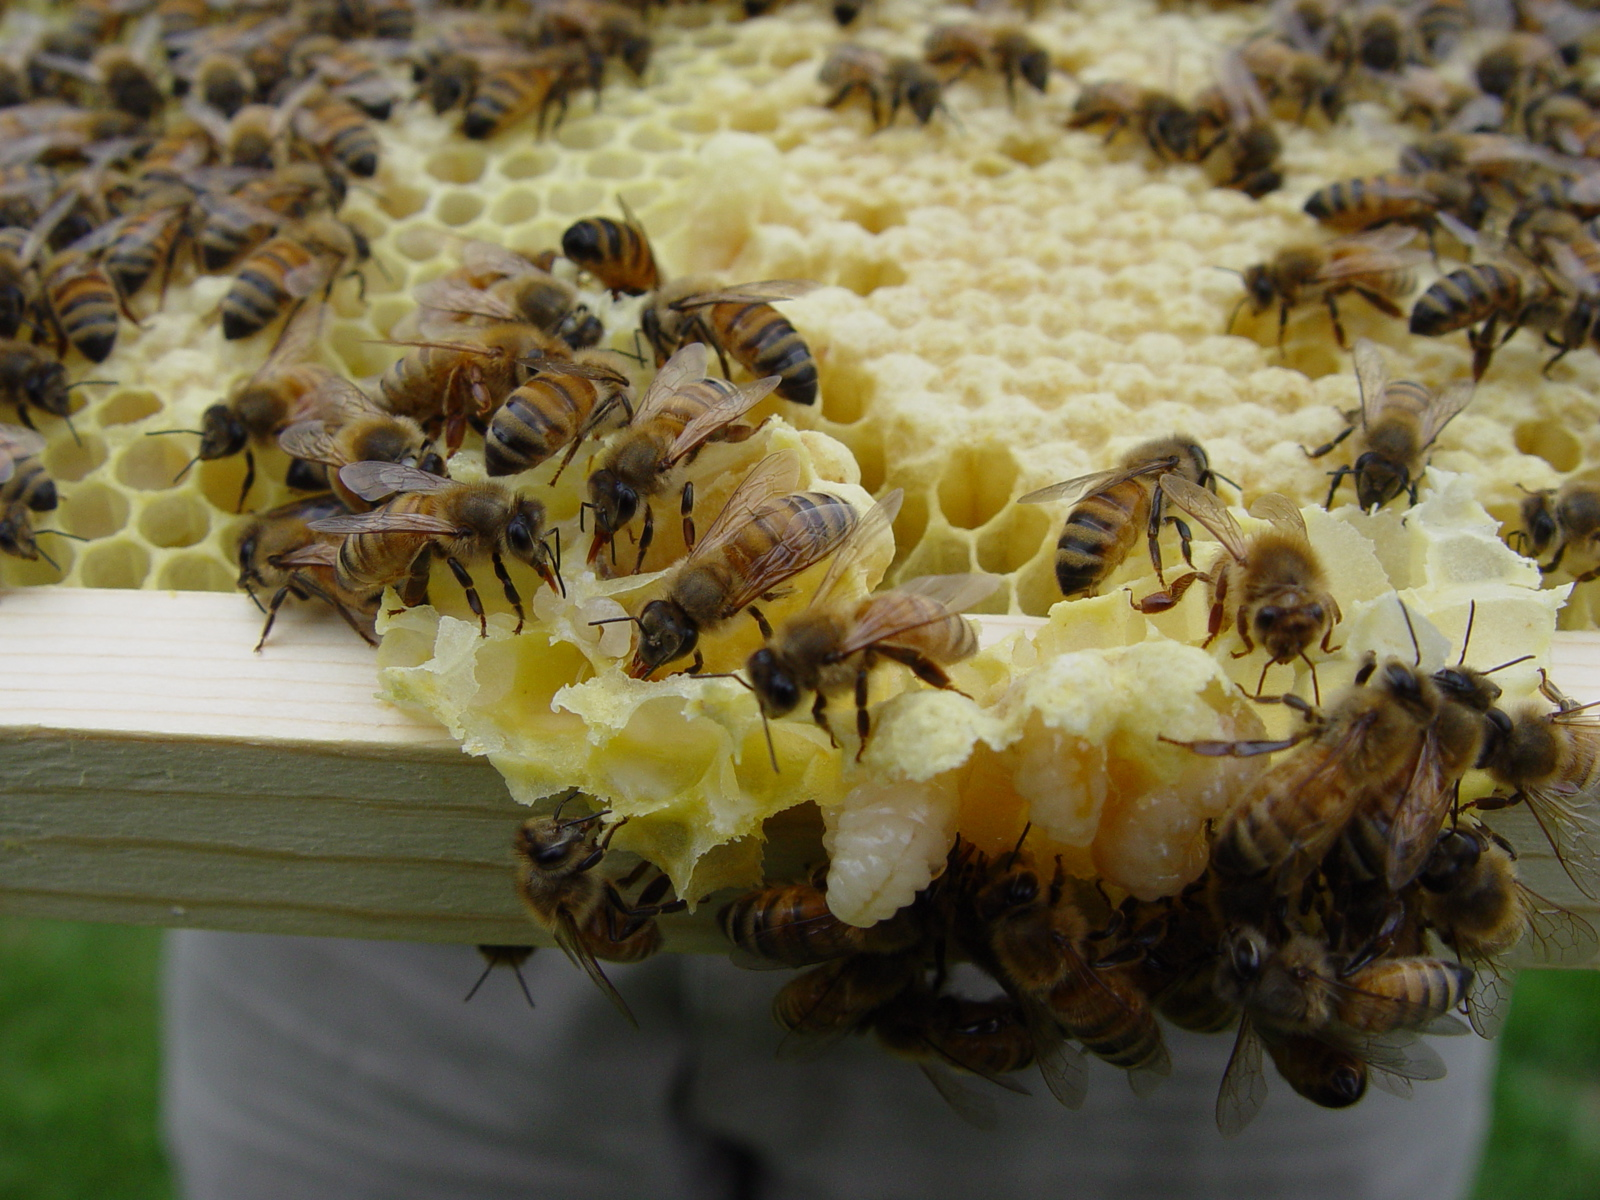 a look into the social organization of honey bees (4)social insect research group, zoology and entomology department, university of pretoria, pretoria, south africa honey bees, apis species, obtain carbohydrates from nectar and honeydew these resources are ripened into honey in wax cells that are capped for long-term storage.